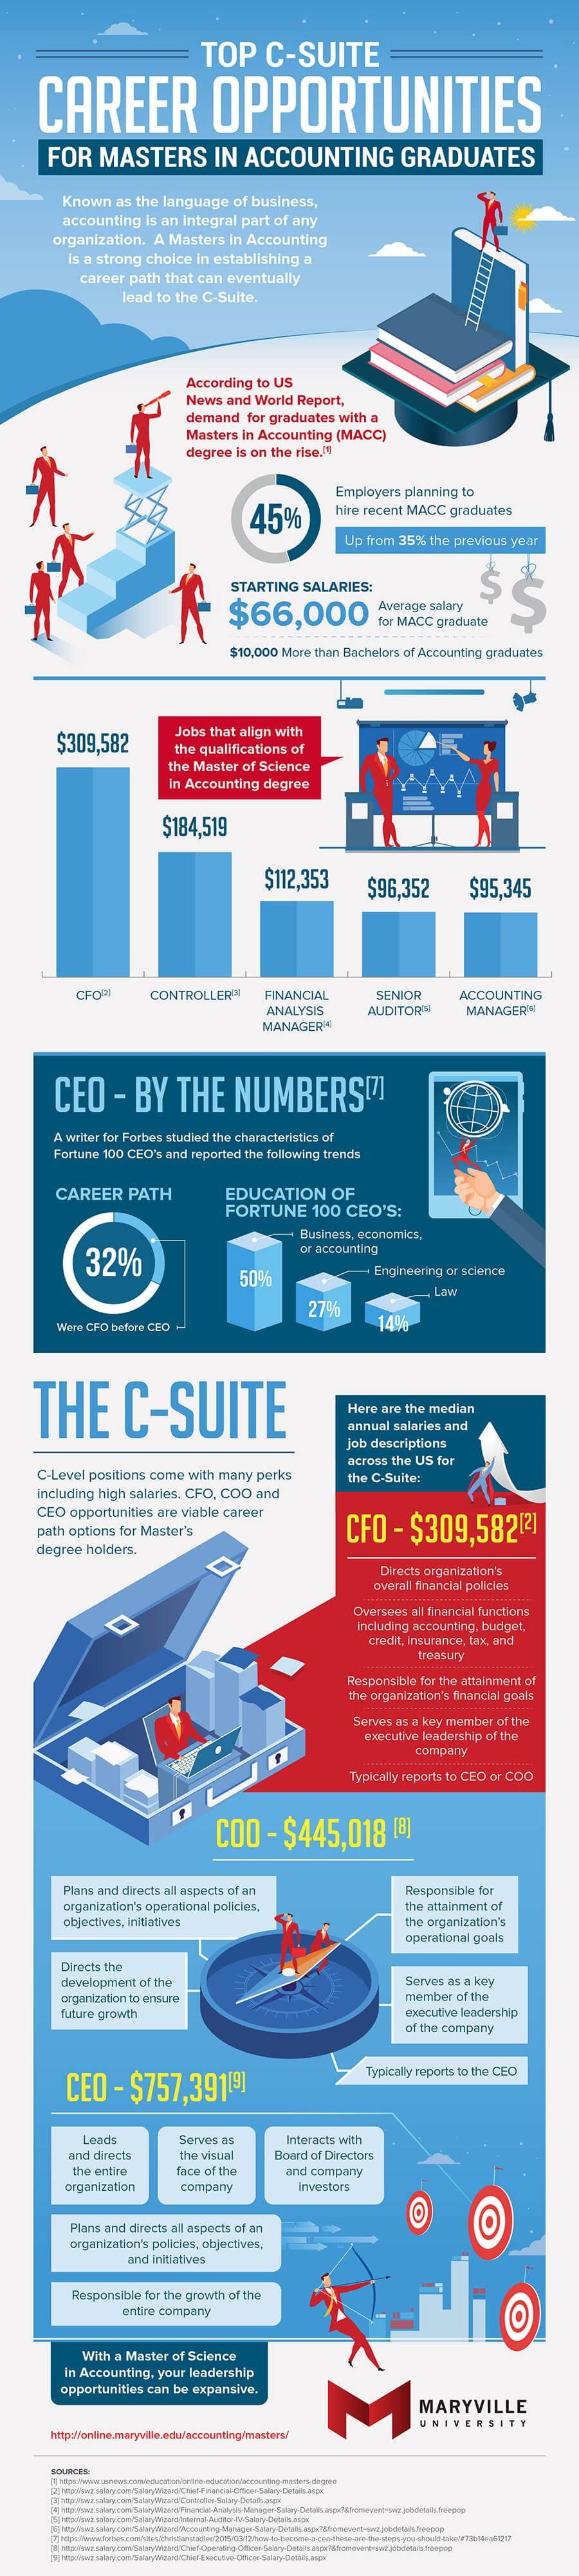 Top C-Suite Career Opportunities #infographic